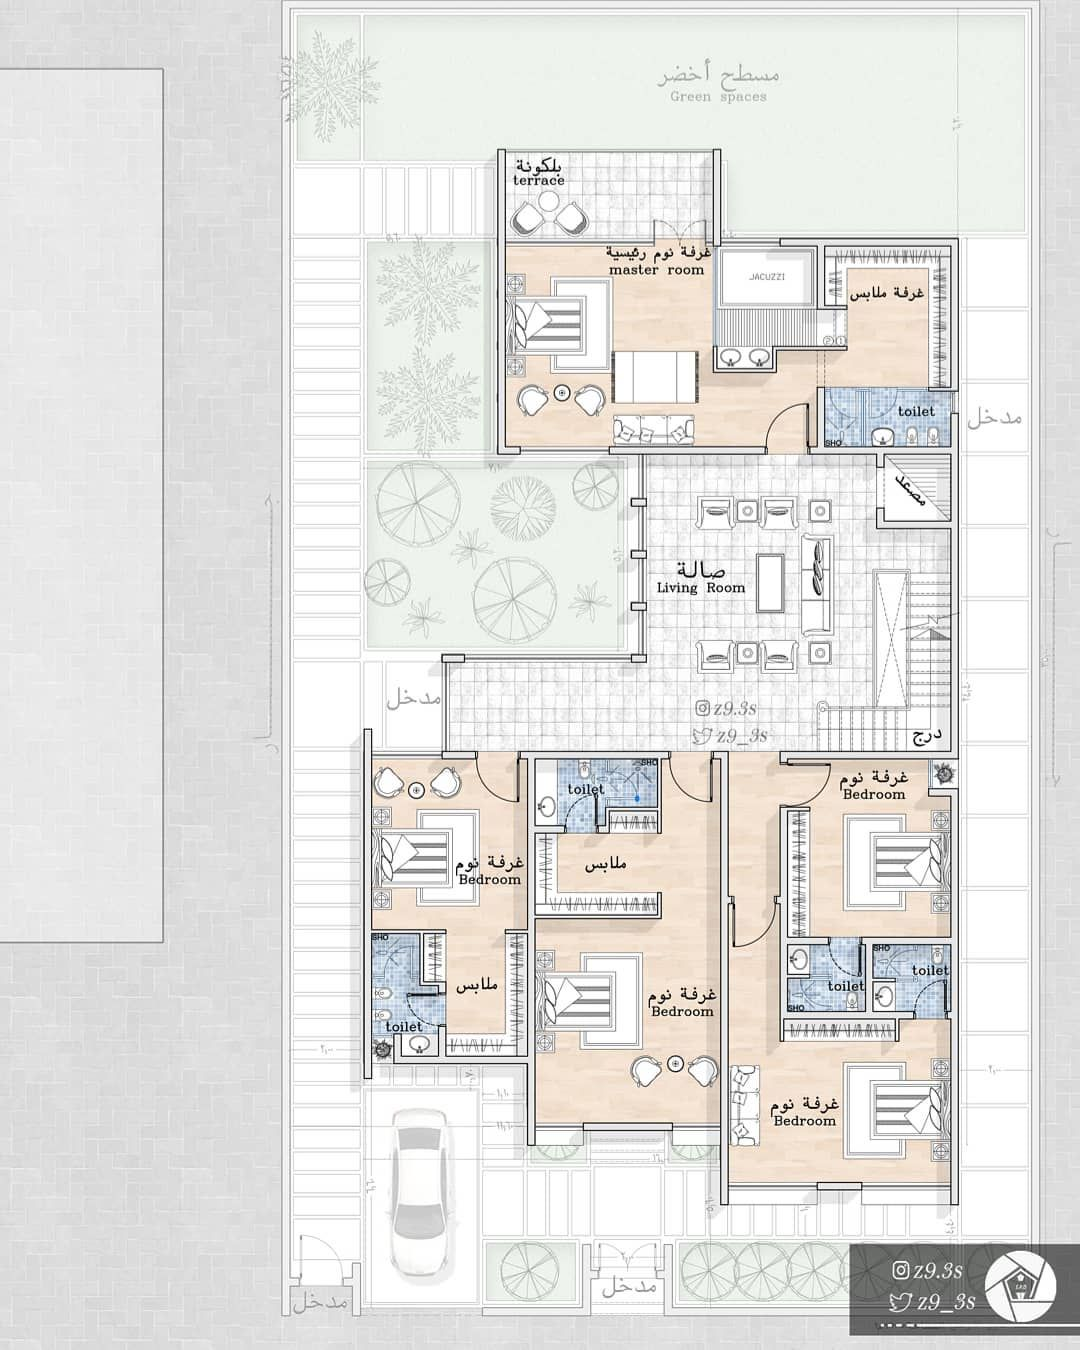 Image May Contain 1 Person Architectural House Plans Basement House Plans Home Design Plans